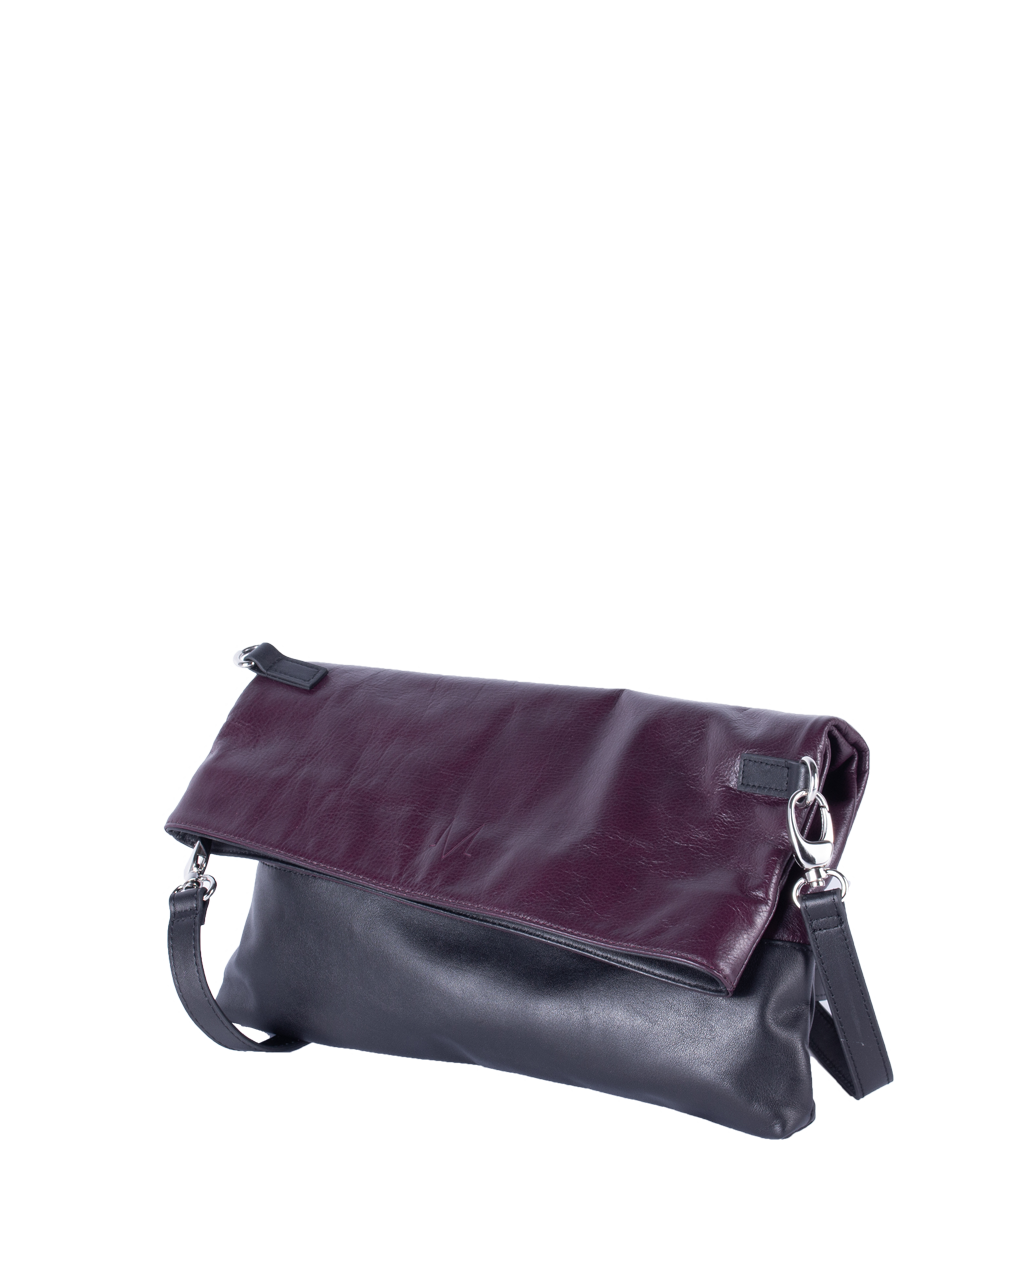 TAT_normcore_14583_twotone fold bag_purple